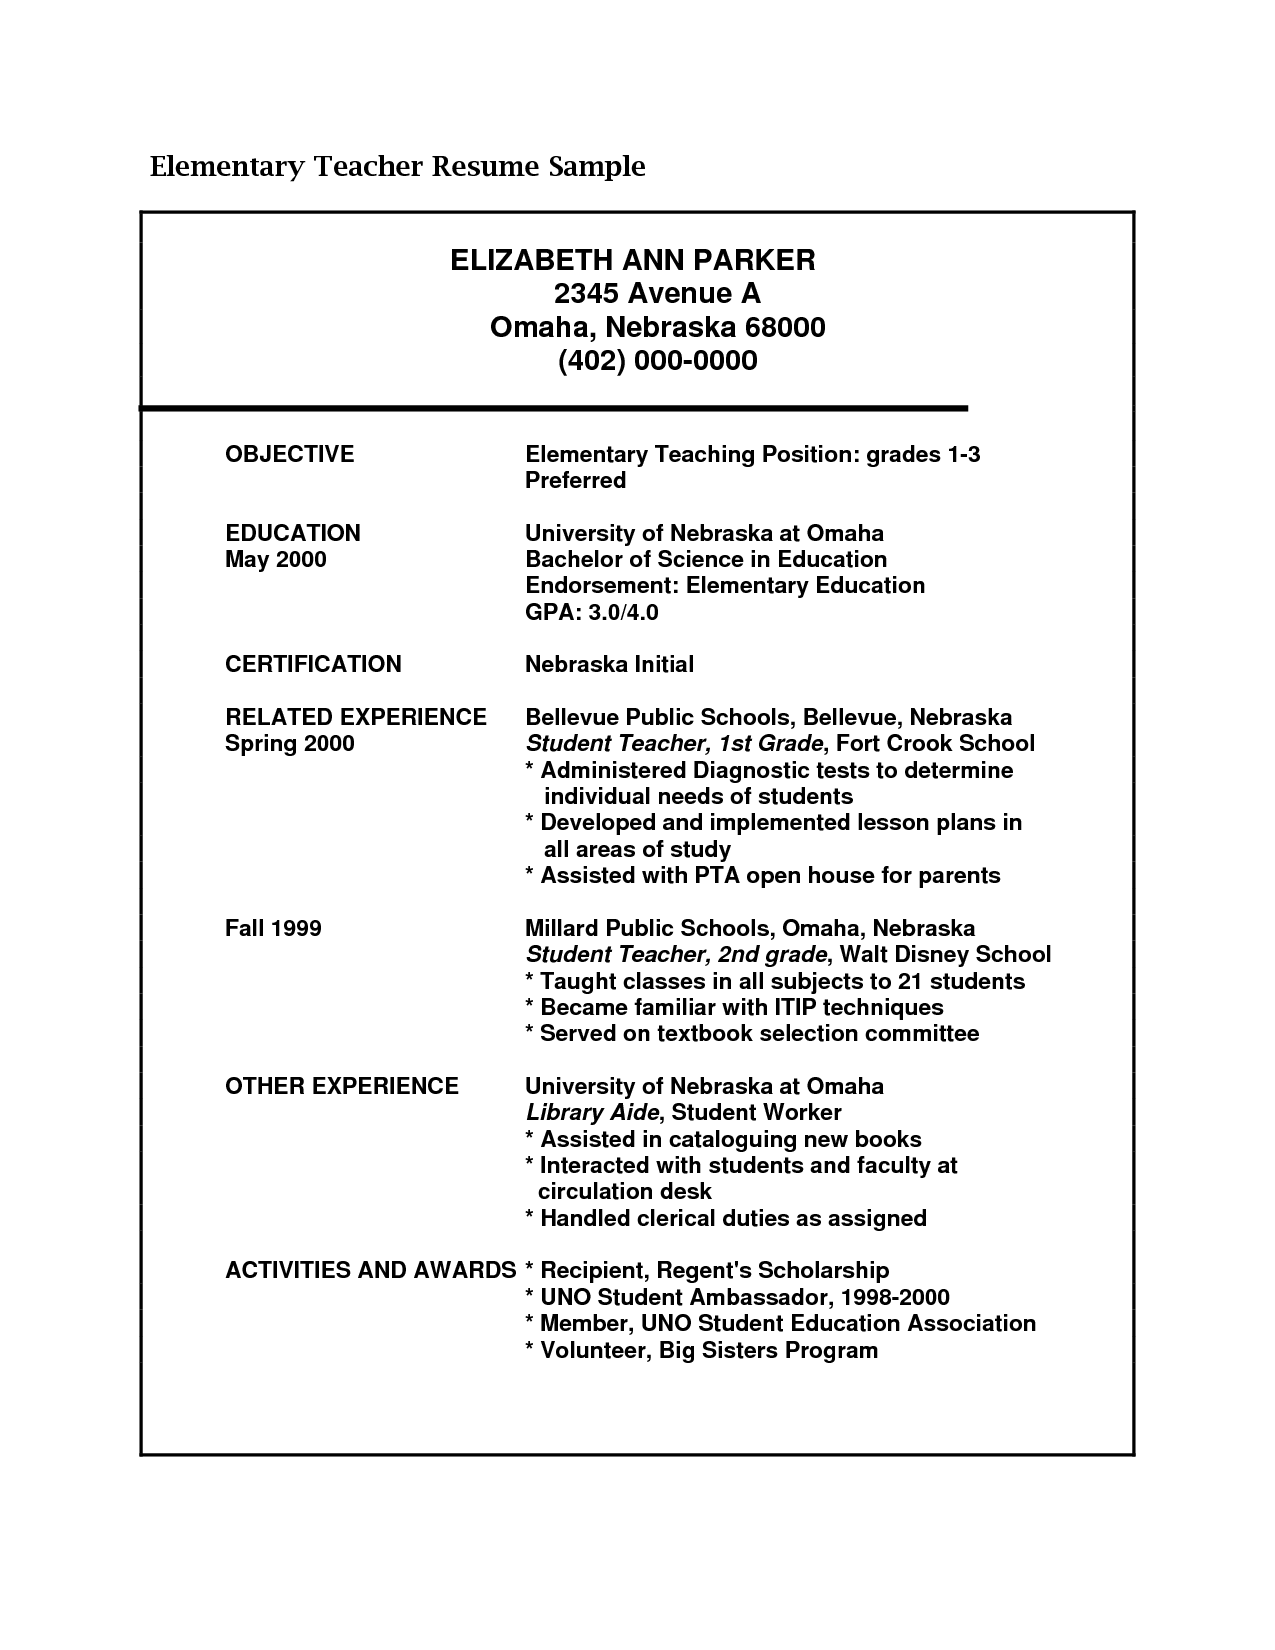 Sample Resume For Elementary Teachers financial systems analyst ...